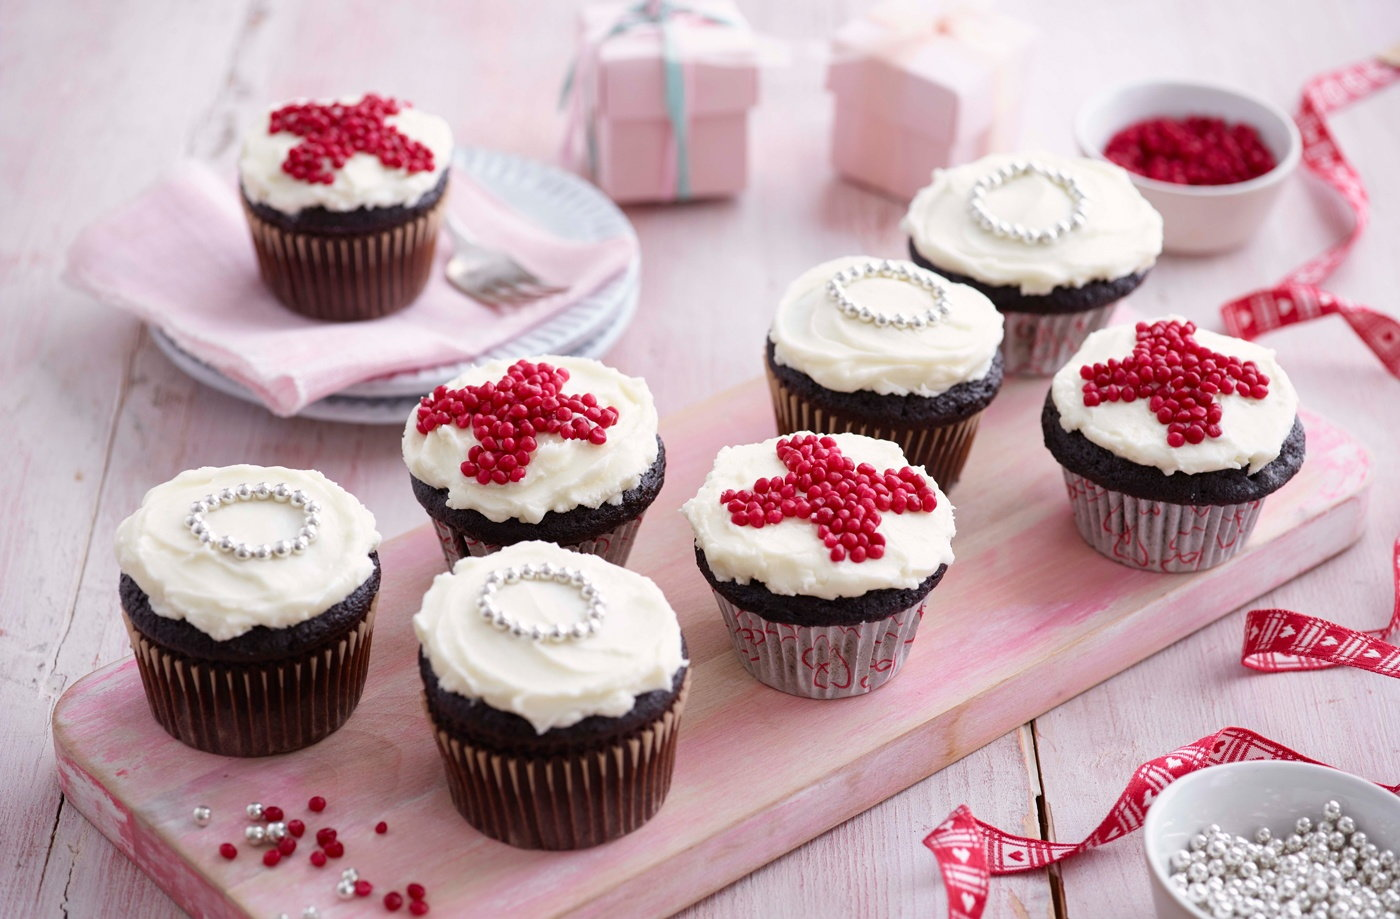 XOXO Red Velvet Cupcakes Recipe